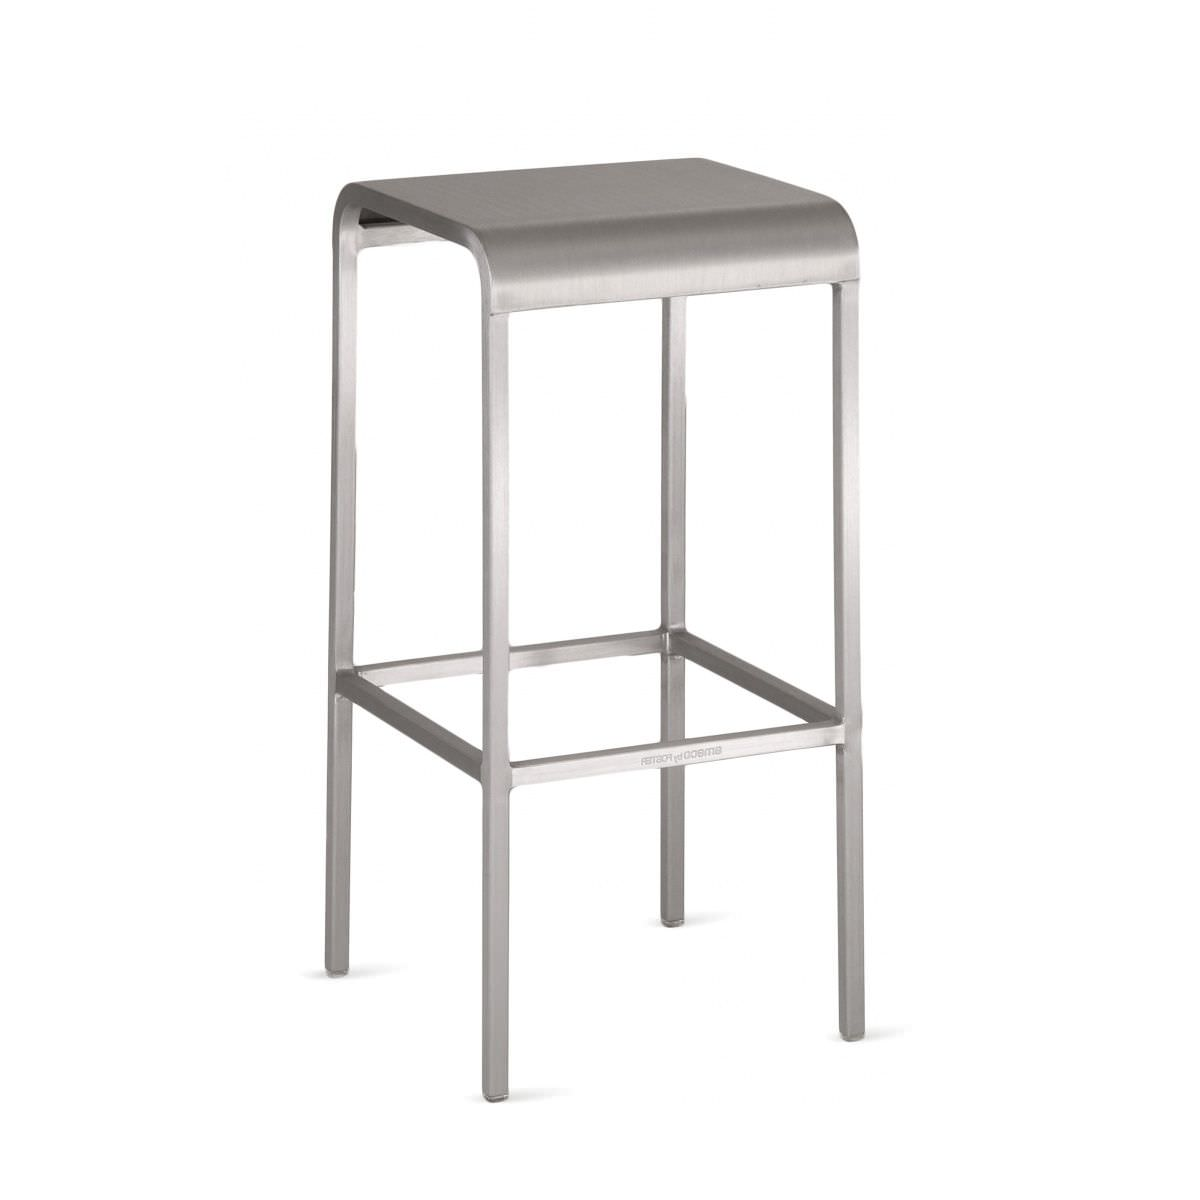 Contemporary bar stool / metal - 20-06 : 2006 30 by Norman Foster